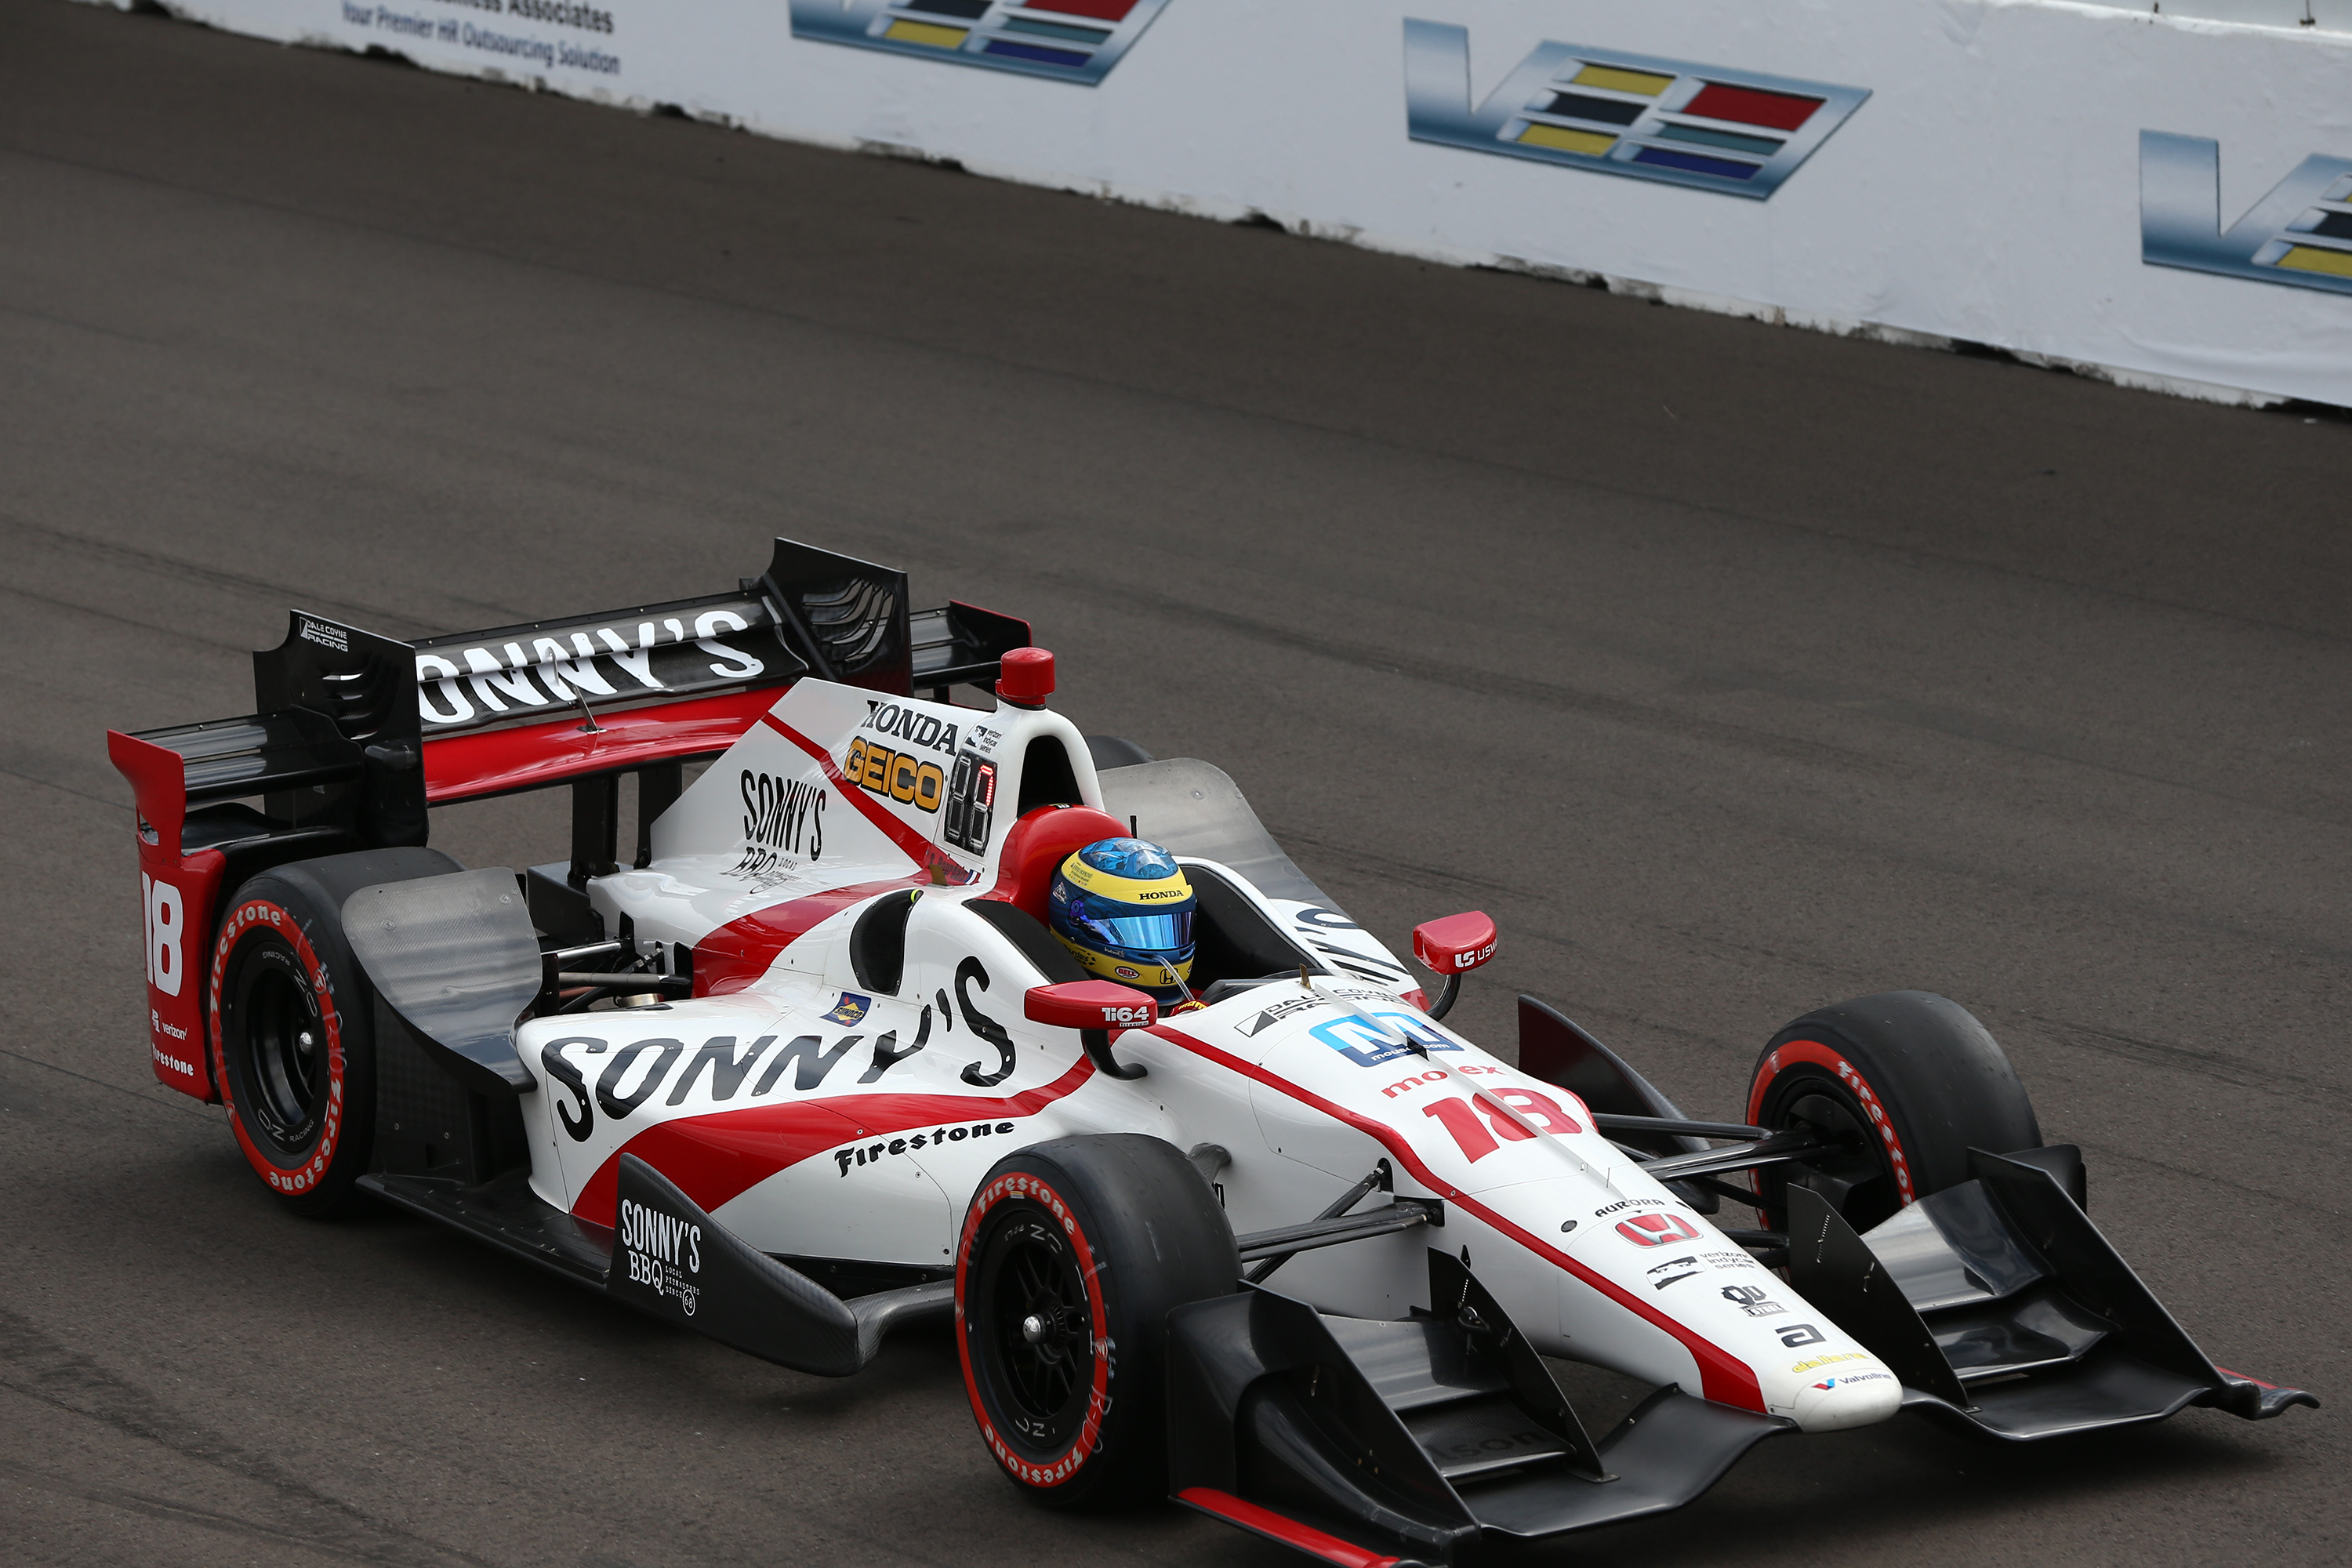 Bourdais Returns to Mouser/Molex-Sponsored IndyCar, Looks to Finish Season Strong at Sonoma